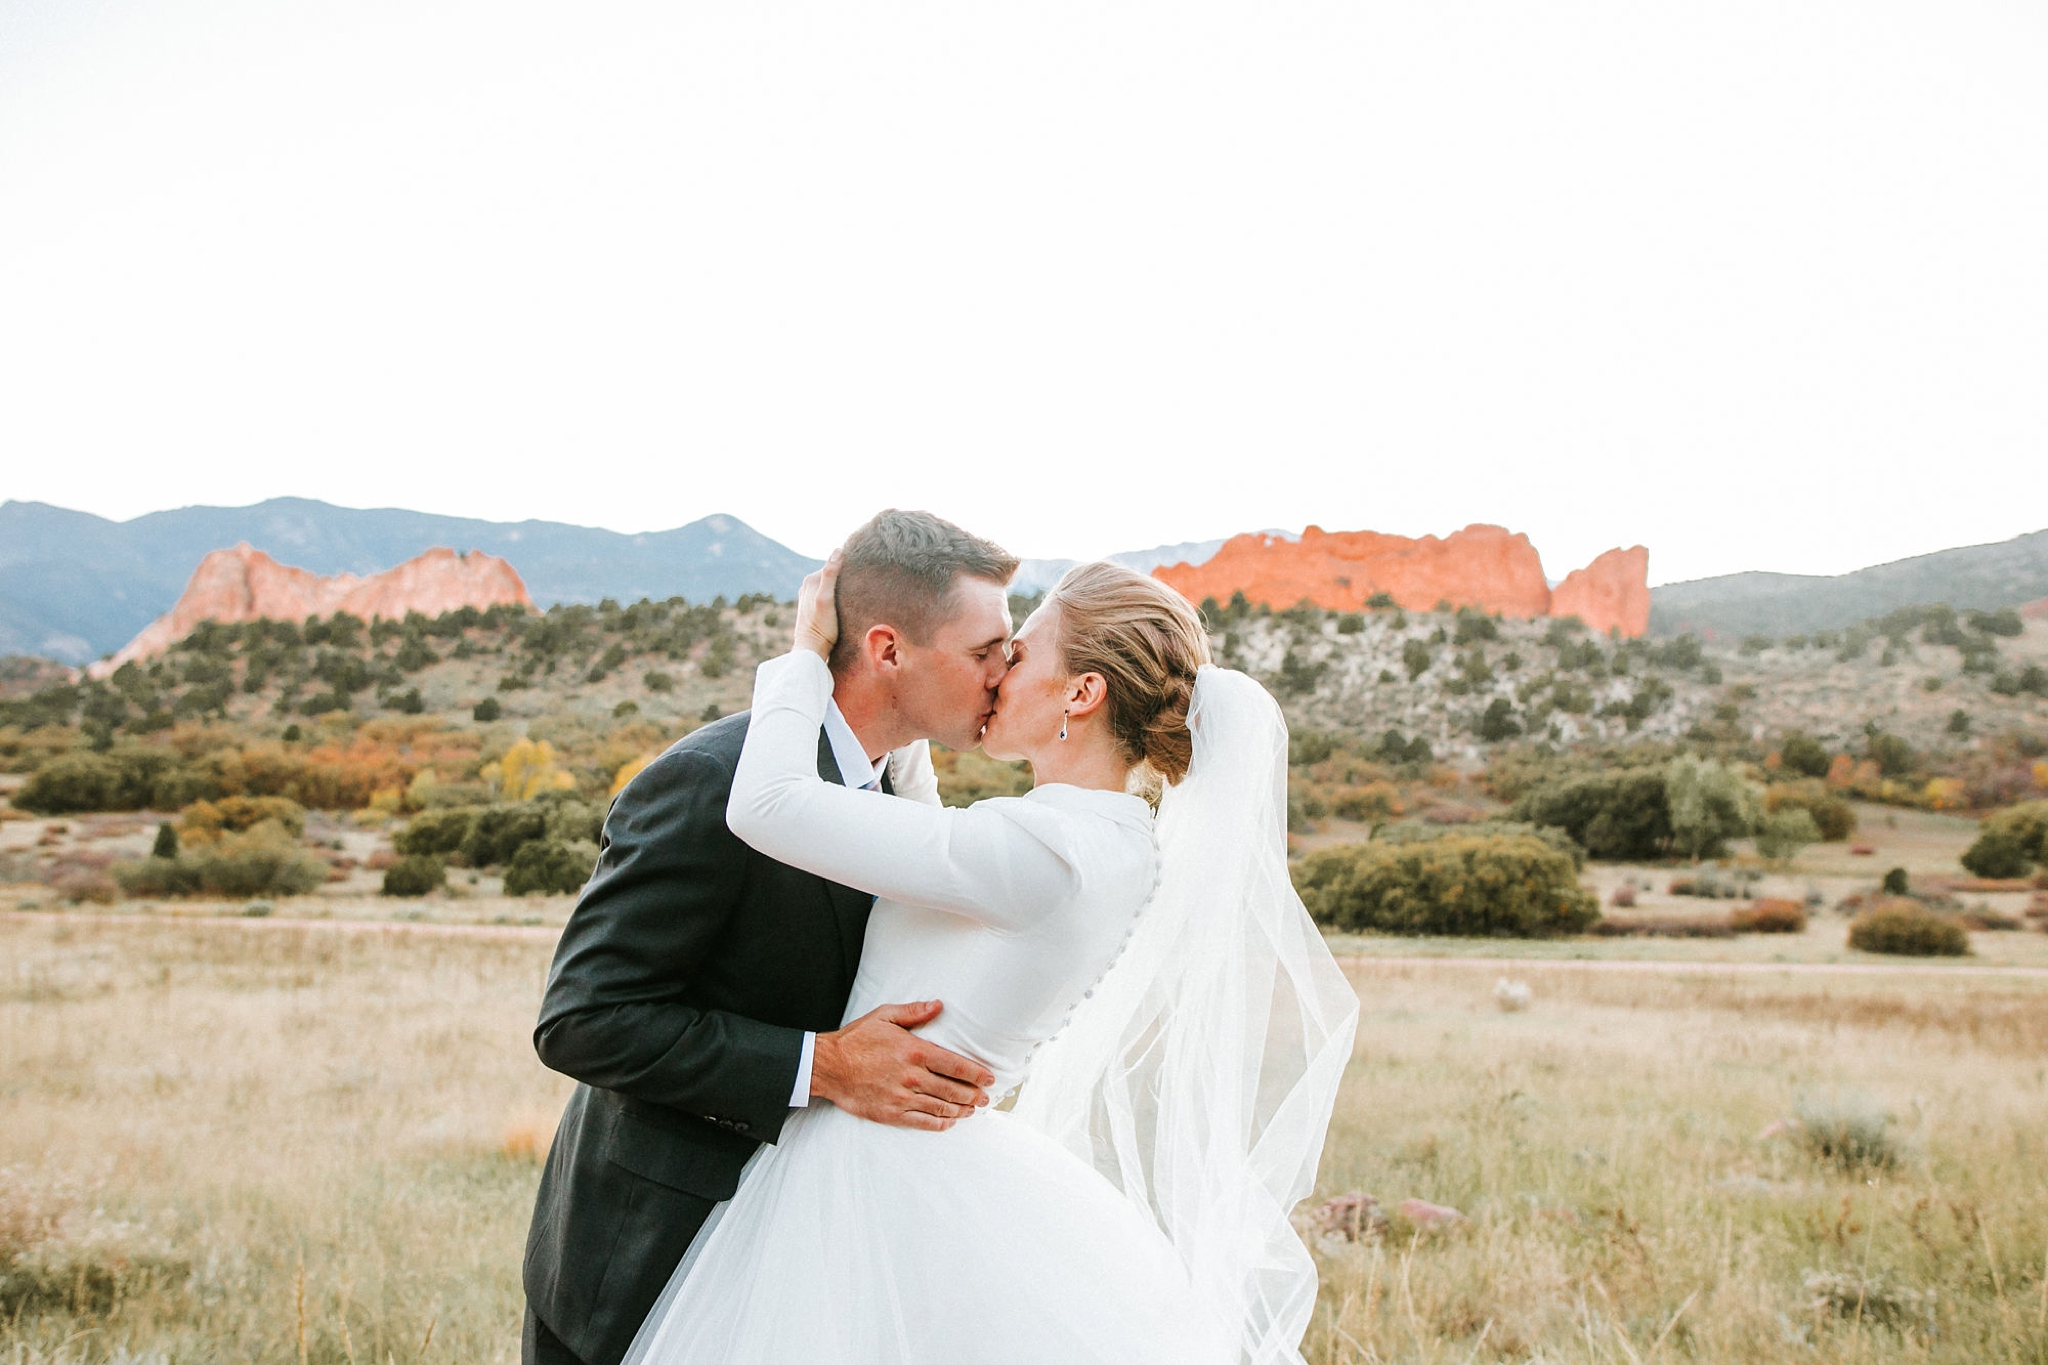 Alicia+lucia+photography+-+albuquerque+wedding+photographer+-+santa+fe+wedding+photography+-+new+mexico+wedding+photographer+-+new+mexico+wedding+-+wedding+venues+-+new+mexico+wedding+venues+-+colorado+wedding+venues_0042.jpg